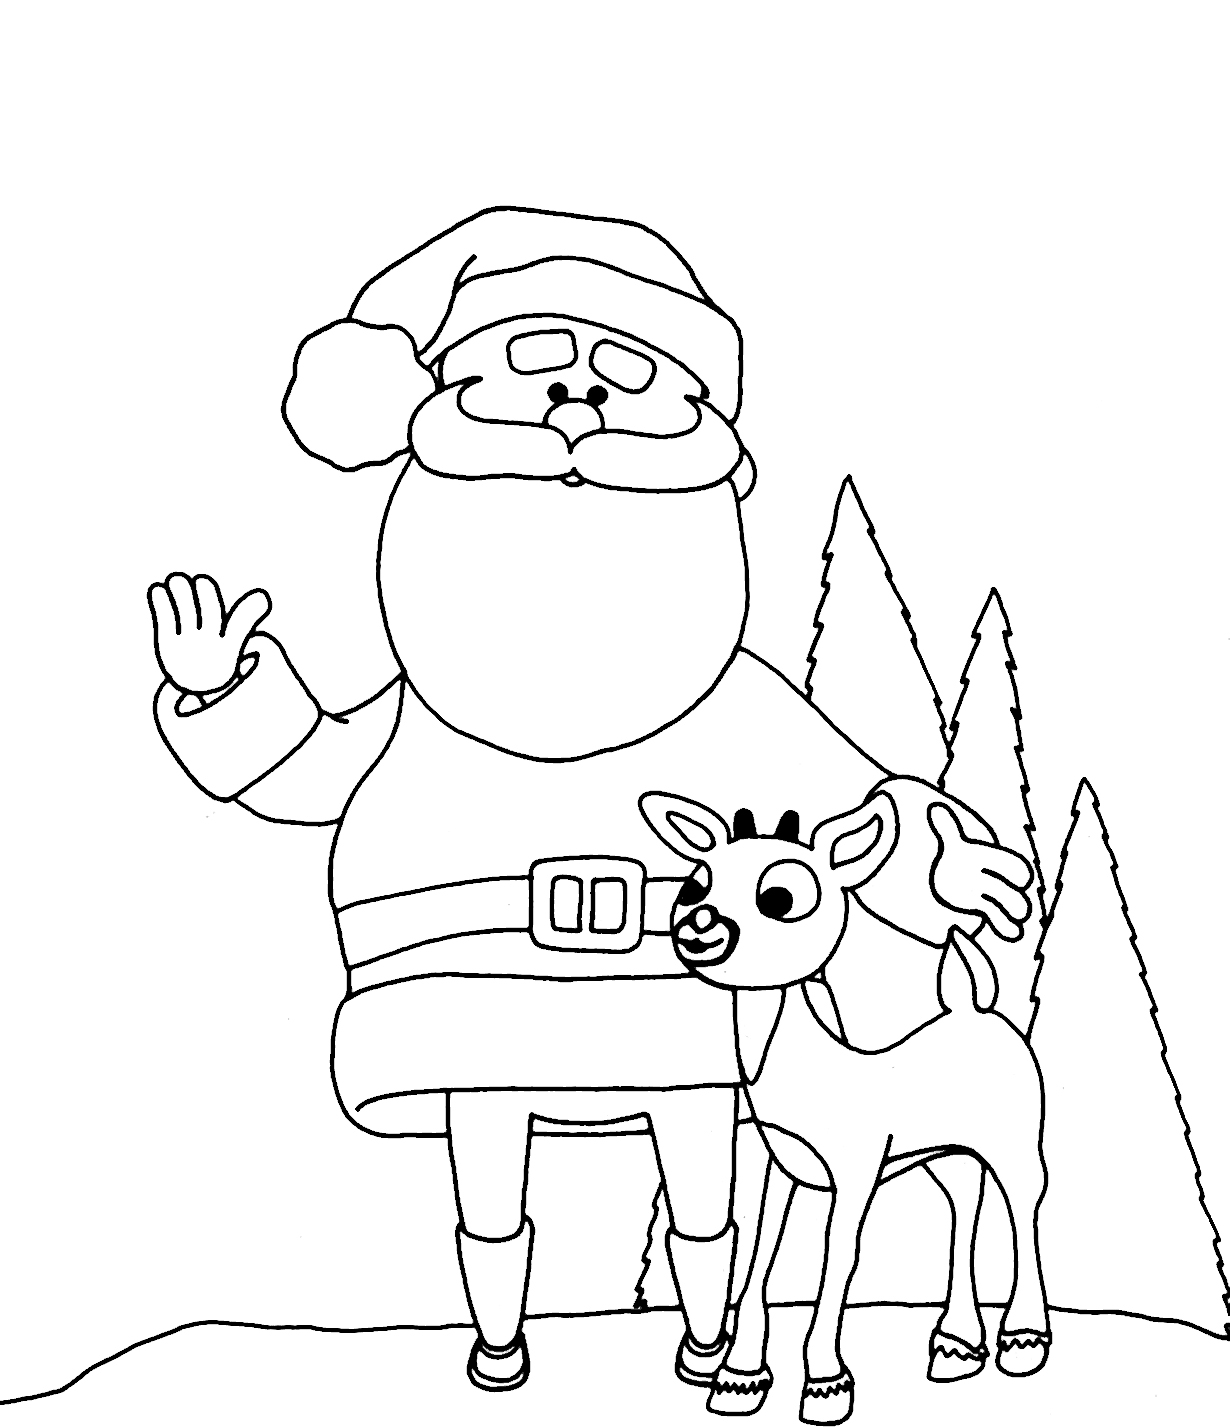 Santa Claus Cartoon Coloring Pages With Free Printable For Kids